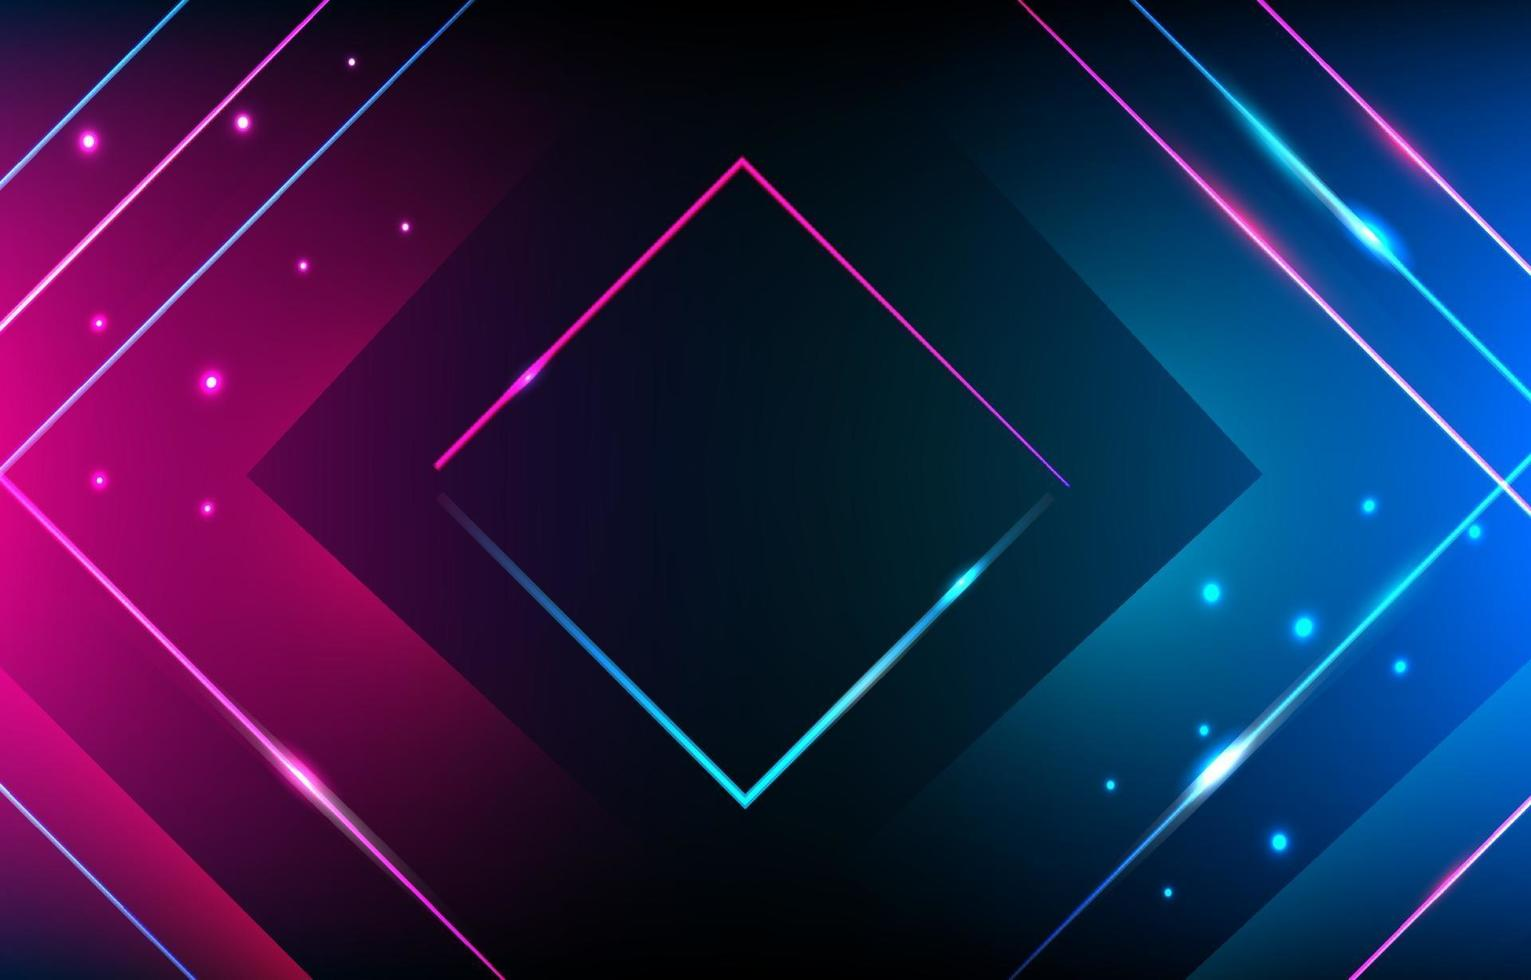 Neon Abstract Background vector